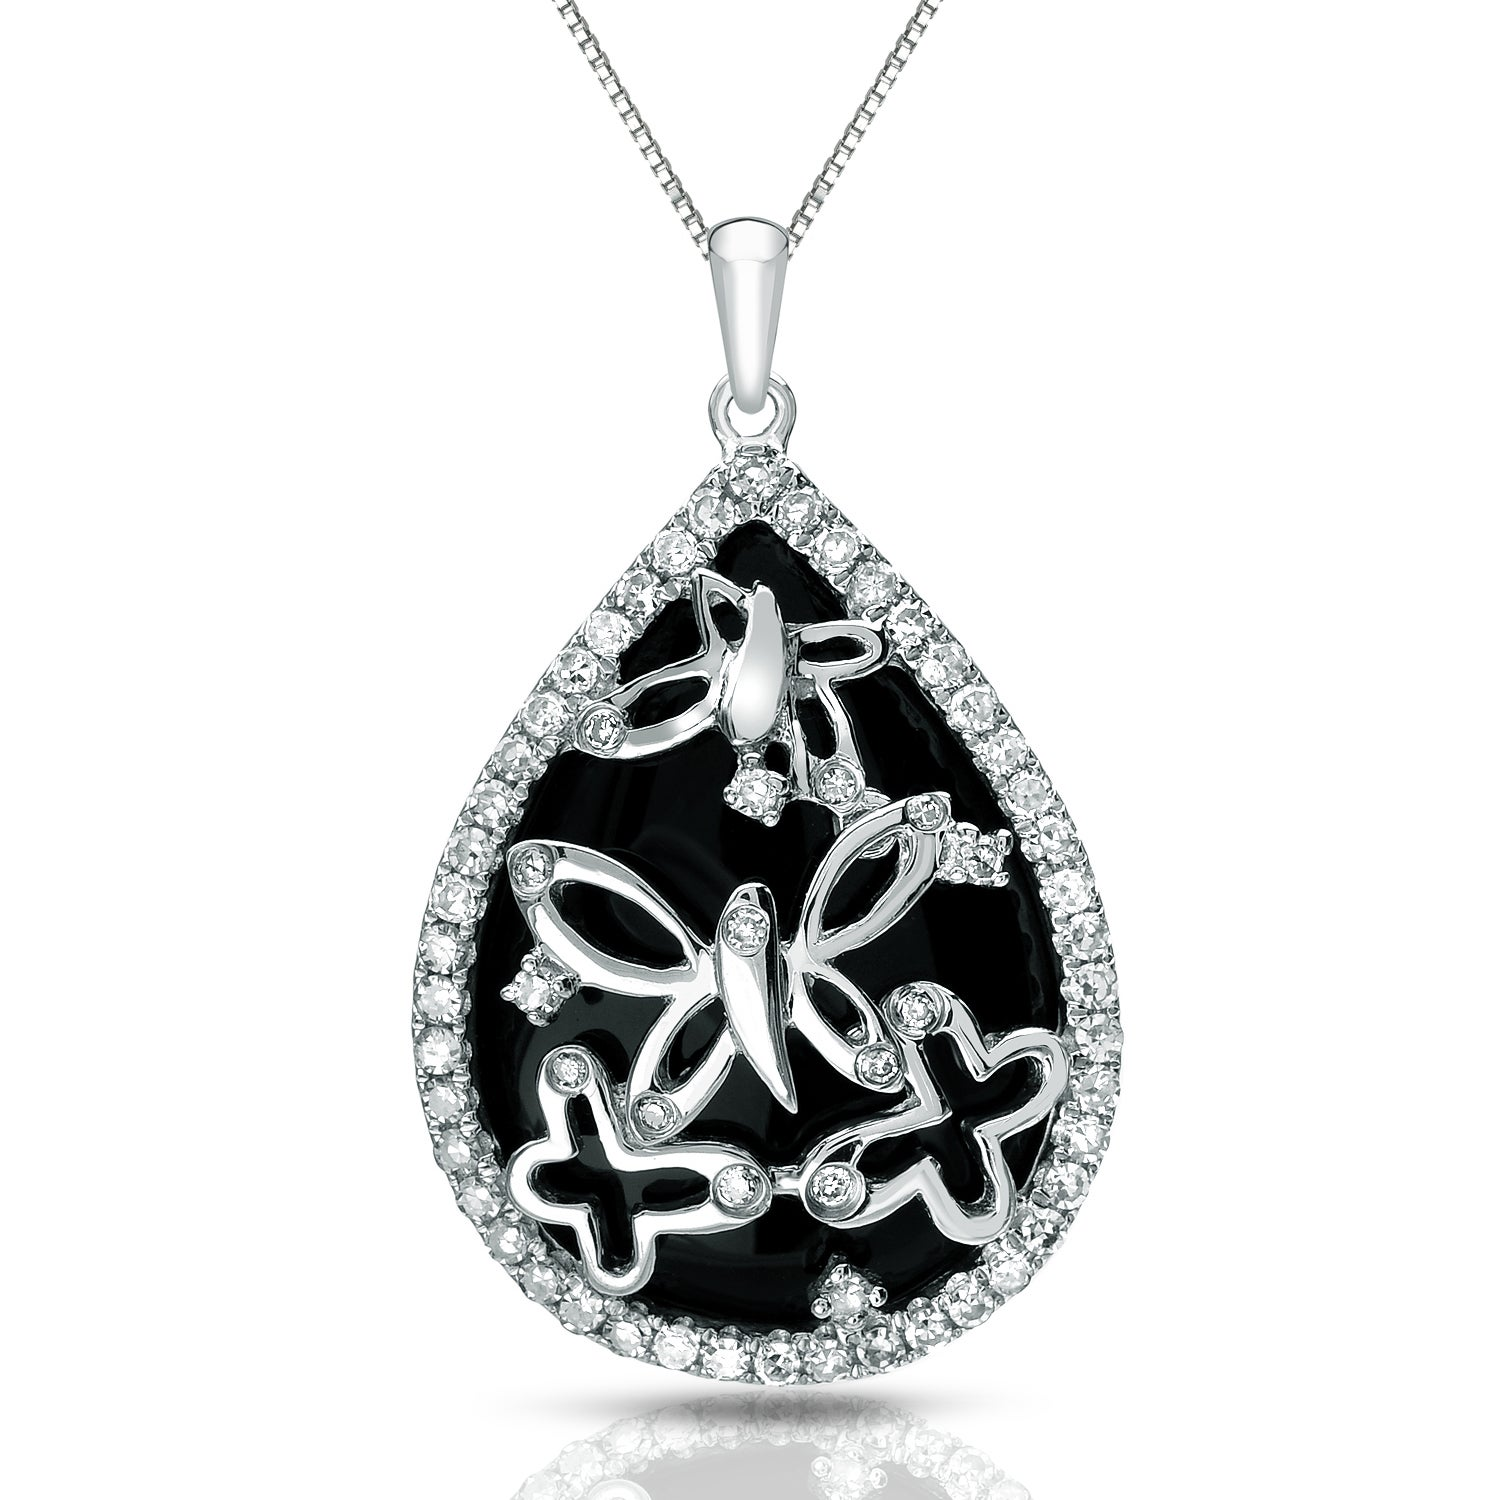 rhodium in onyx jewellery black c silver necklace en necklaces